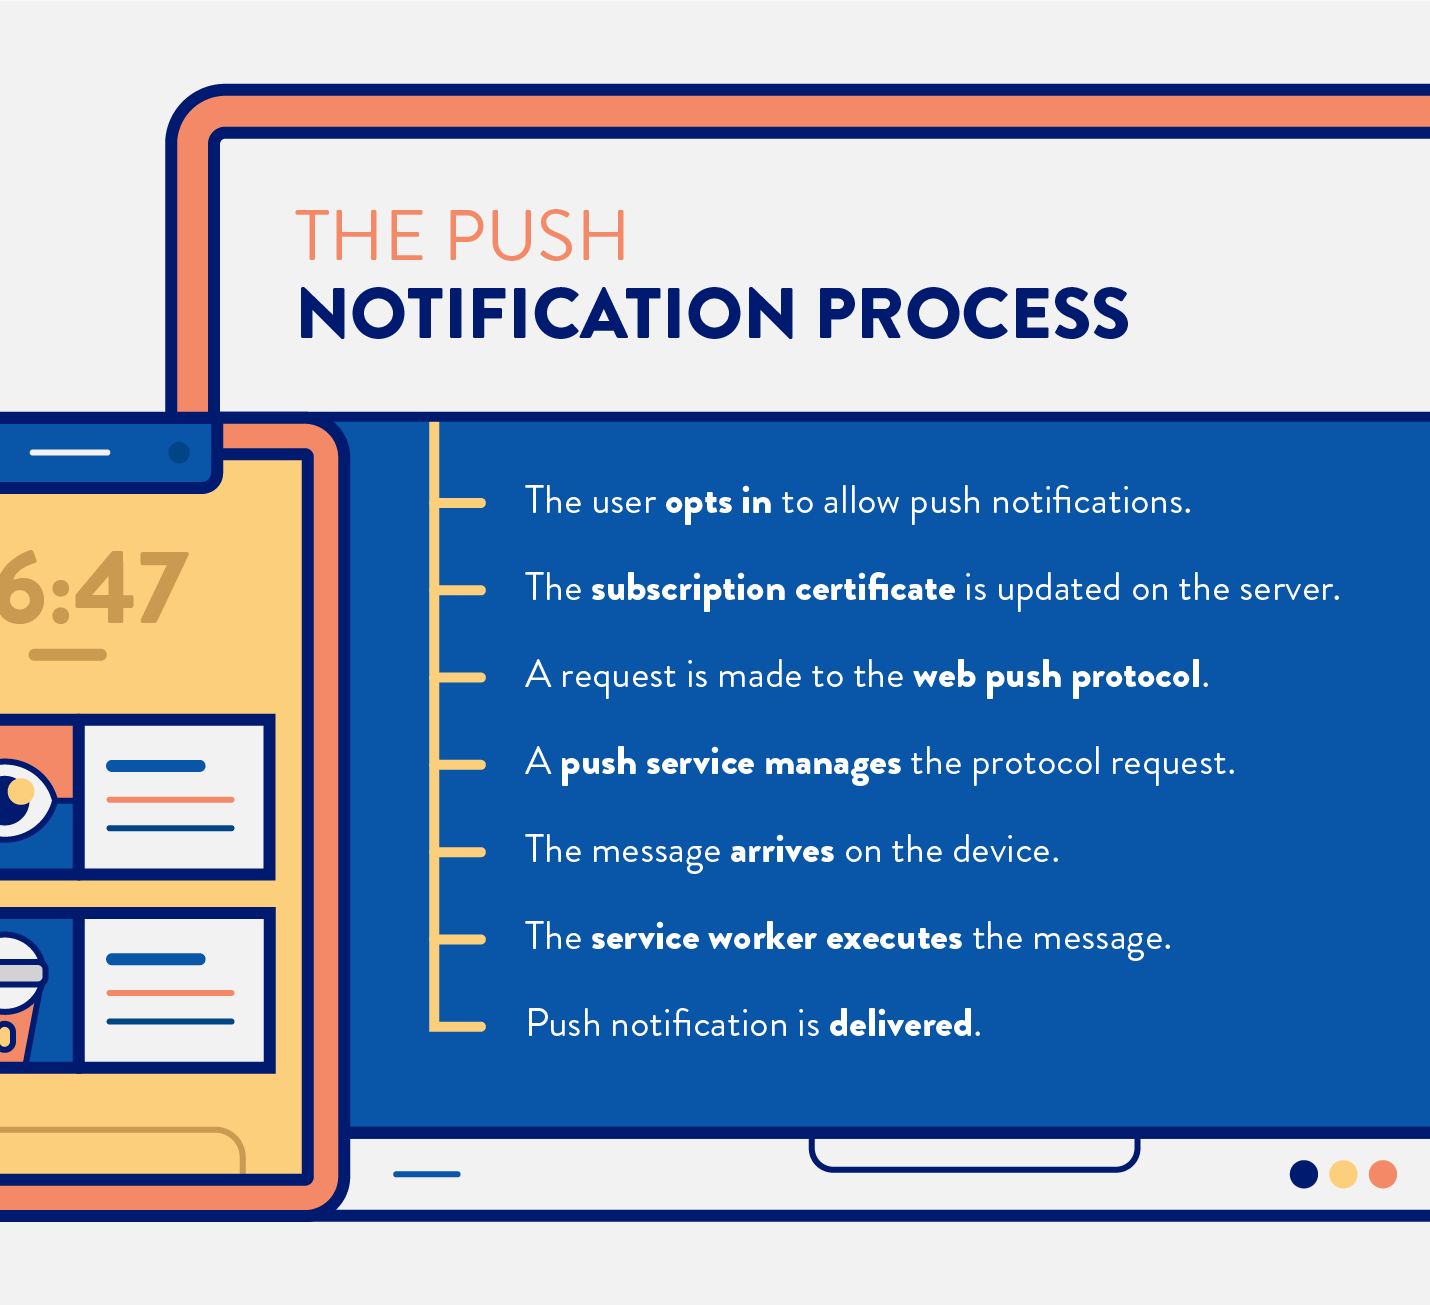 the process for sending and receiving web push notifications